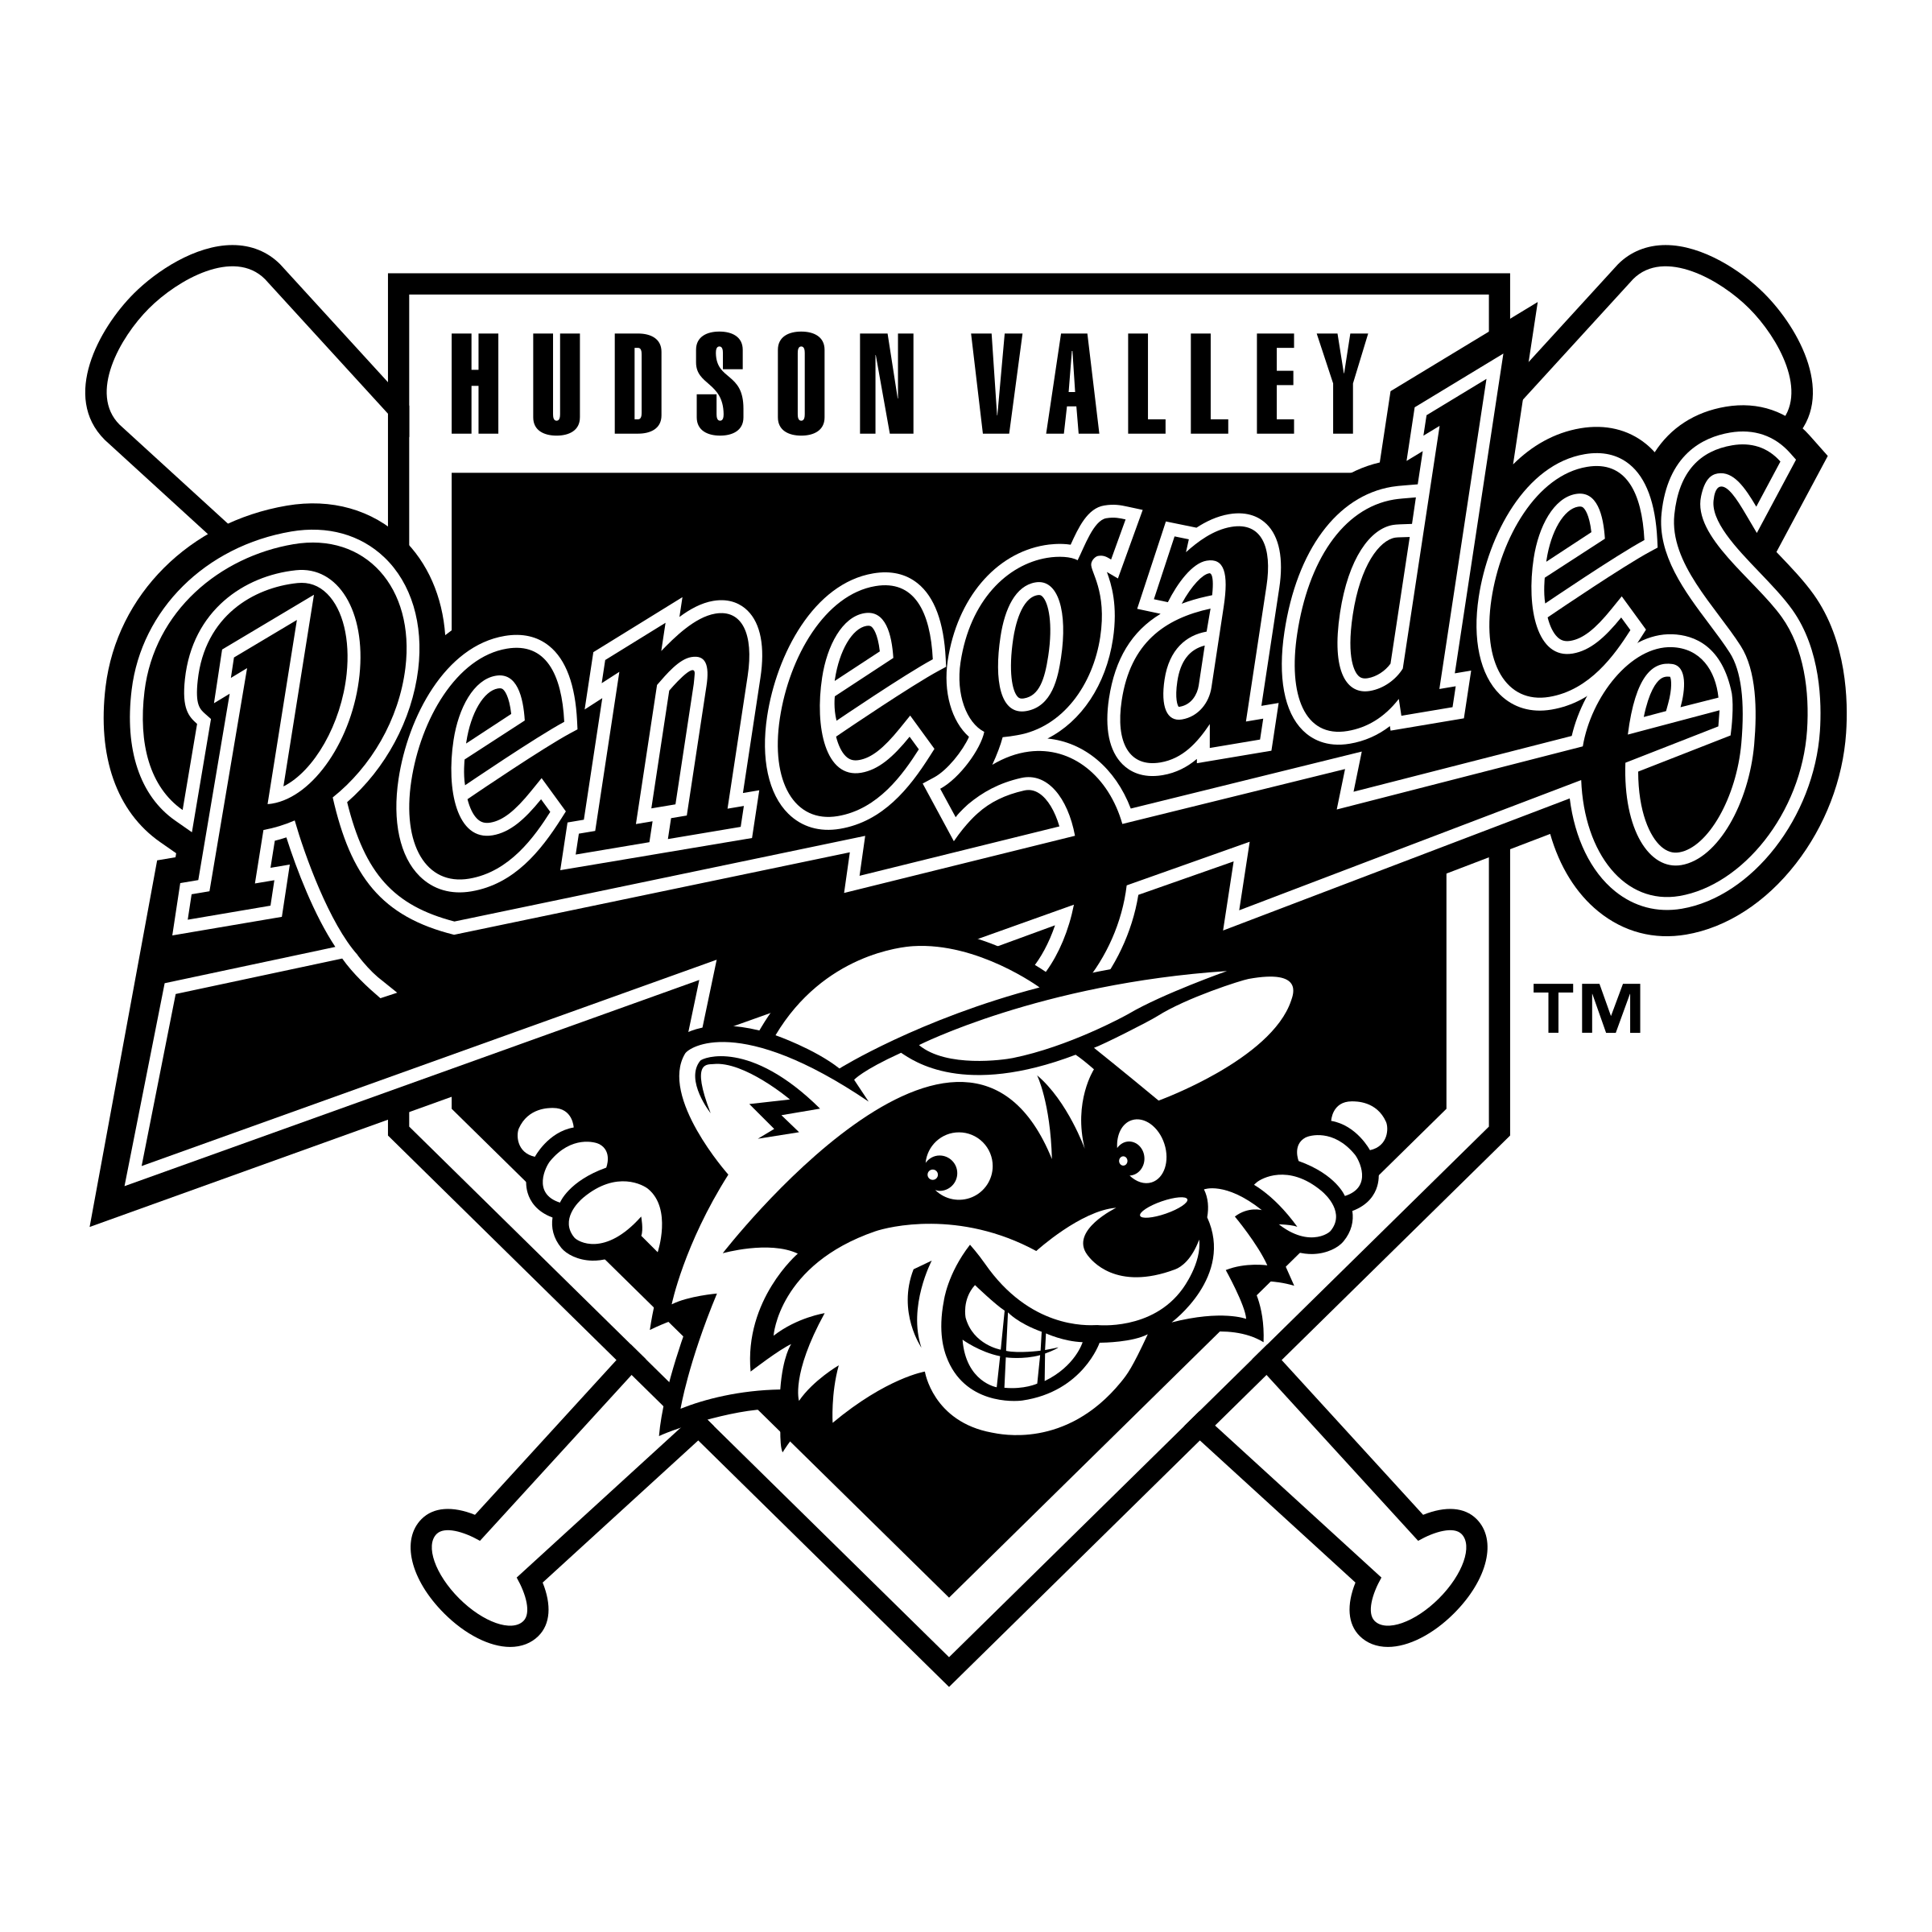 Valley vector black and white. Hudson renegades logo png